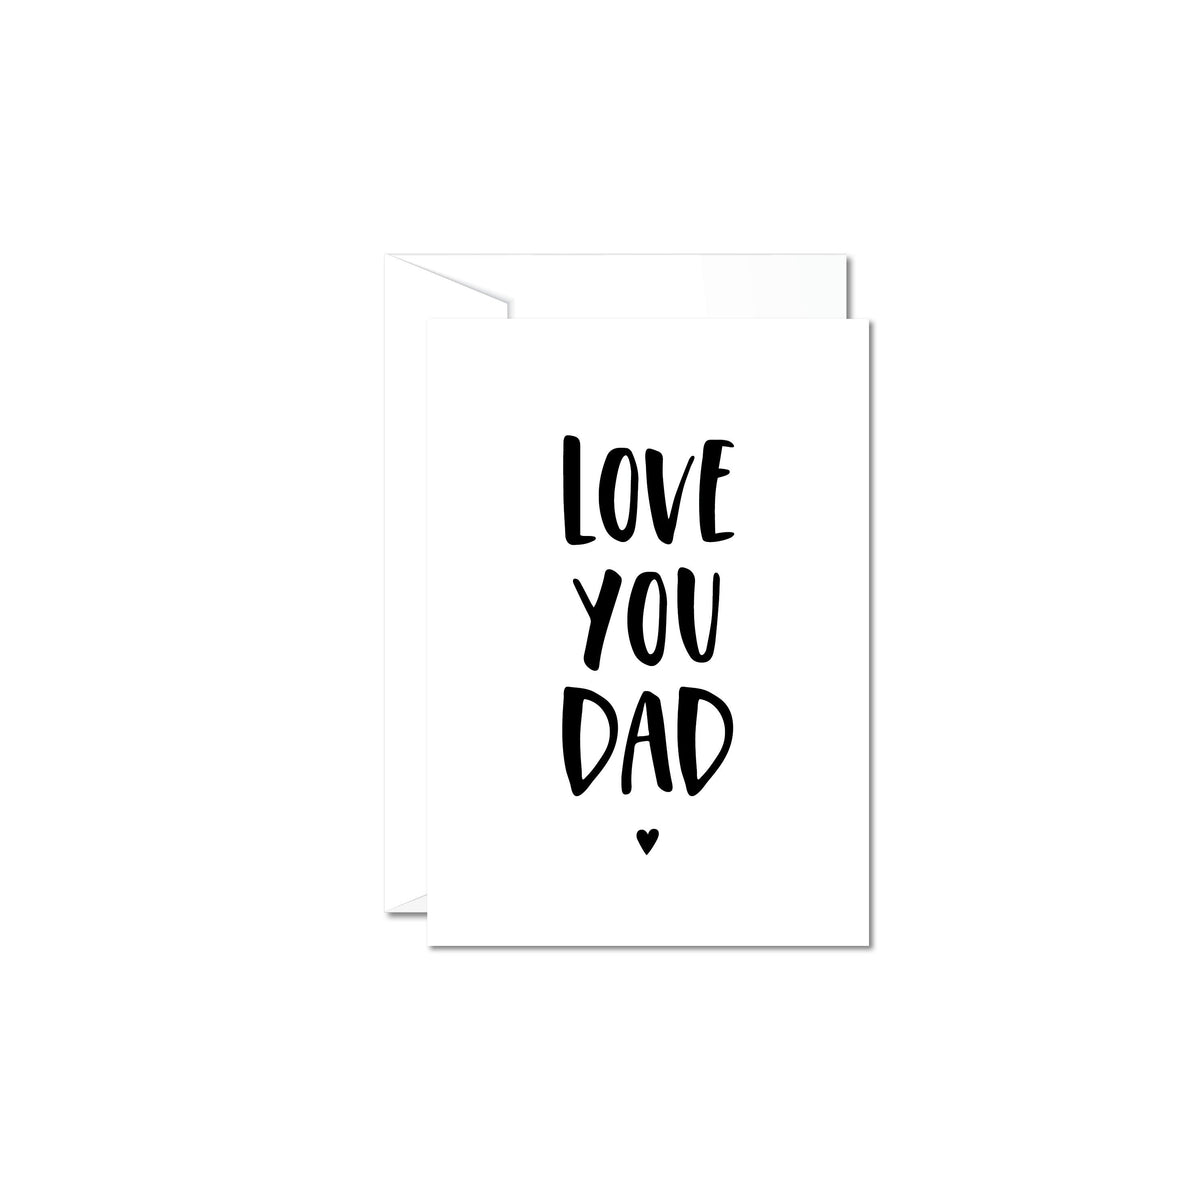 NZ Fathers day gifts for him from Boxsmith Gift Boxes and NZ Gift Hampers. The 'Love You Dad' card is the perfect accompaniment to your Fathers day gift. Easy delivery NZ wide of our online NZ gifts for him